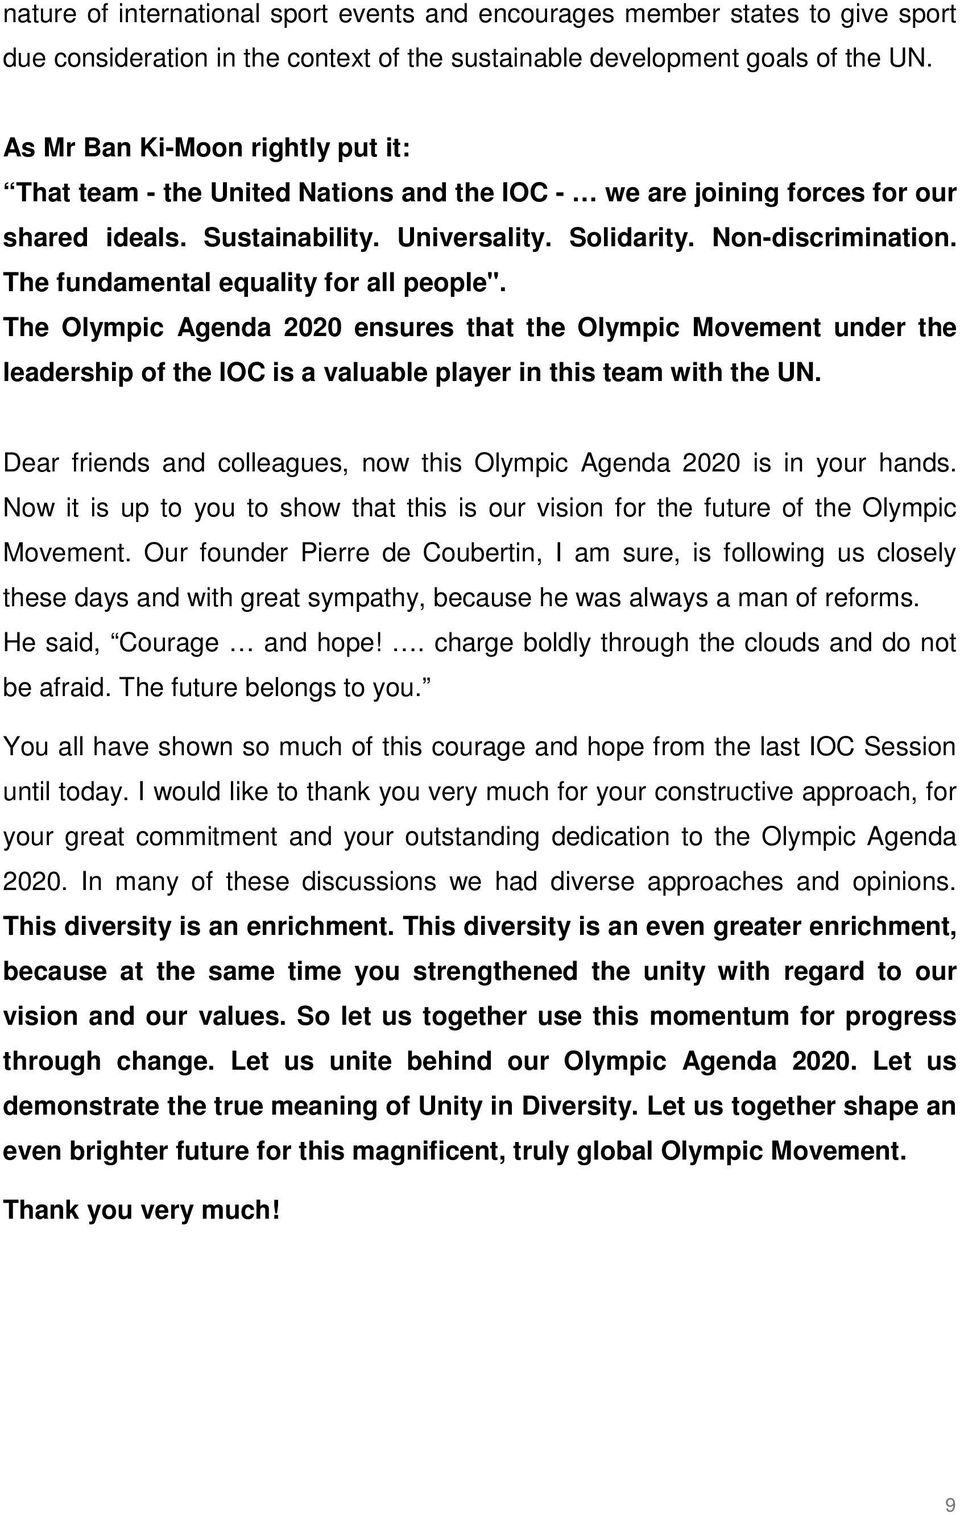 "The fundamental equality for all people"". The Olympic Agenda 2020 ensures that the Olympic Movement under the leadership of the IOC is a valuable player in this team with the UN."